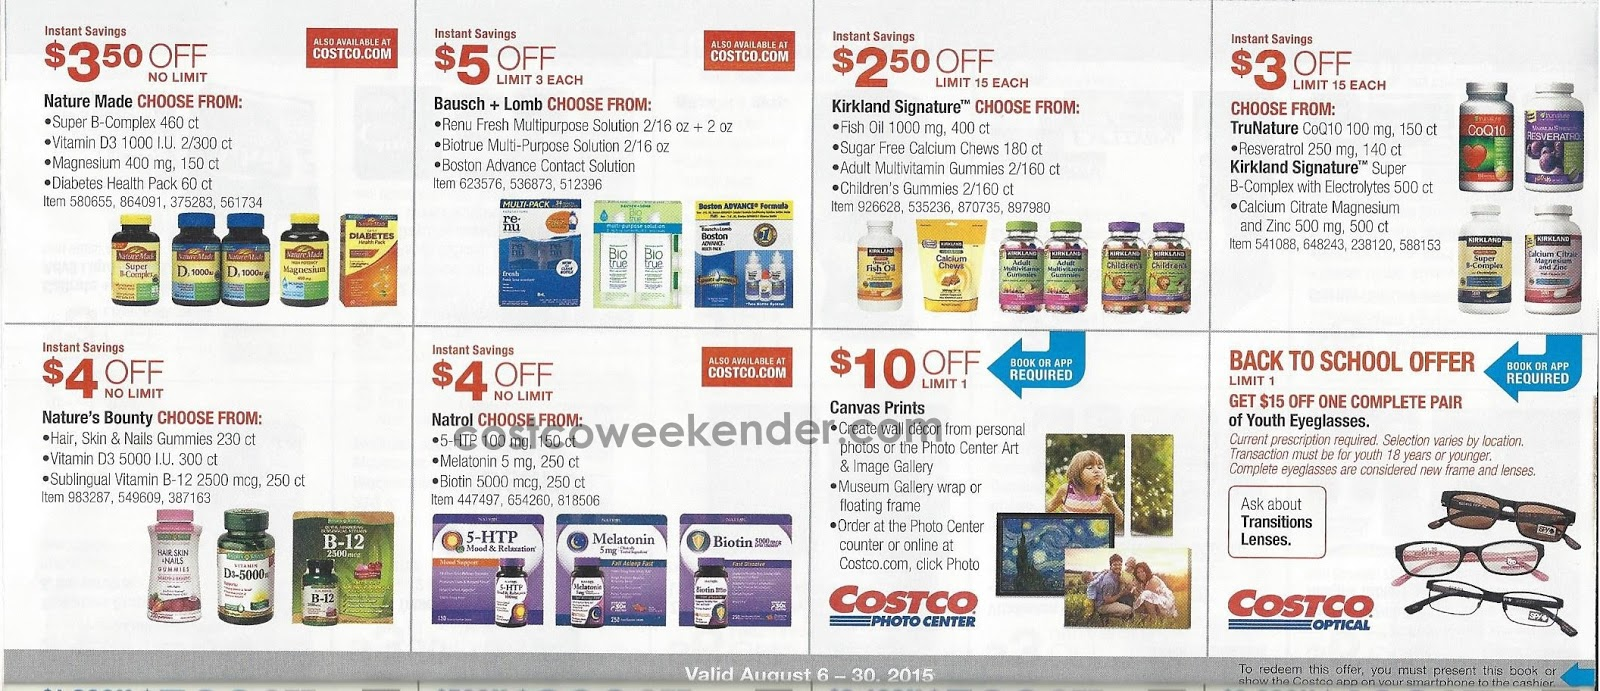 Current costco coupon booklet